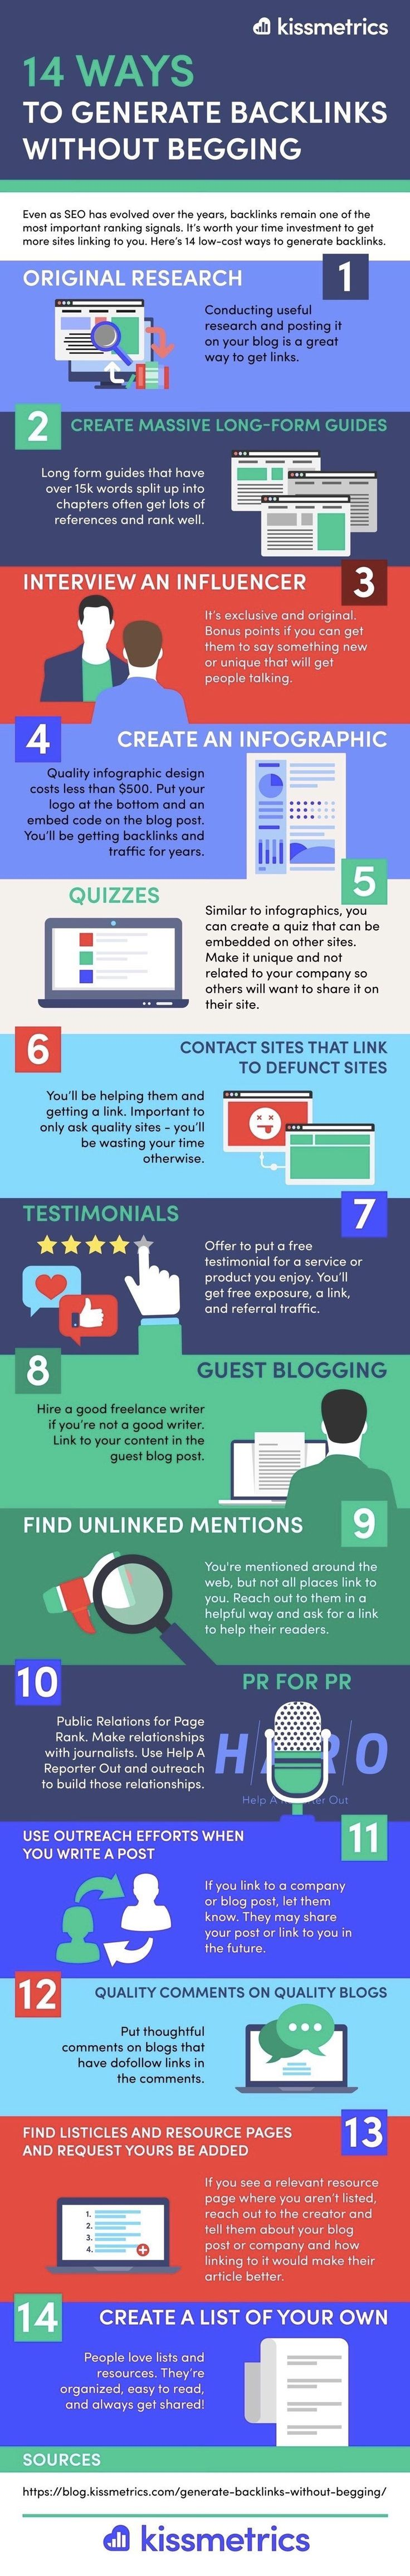 14 Ways to Earn Backlinks Without Begging [Infographic] | Social Media Today #socialmediamarketingstrategy